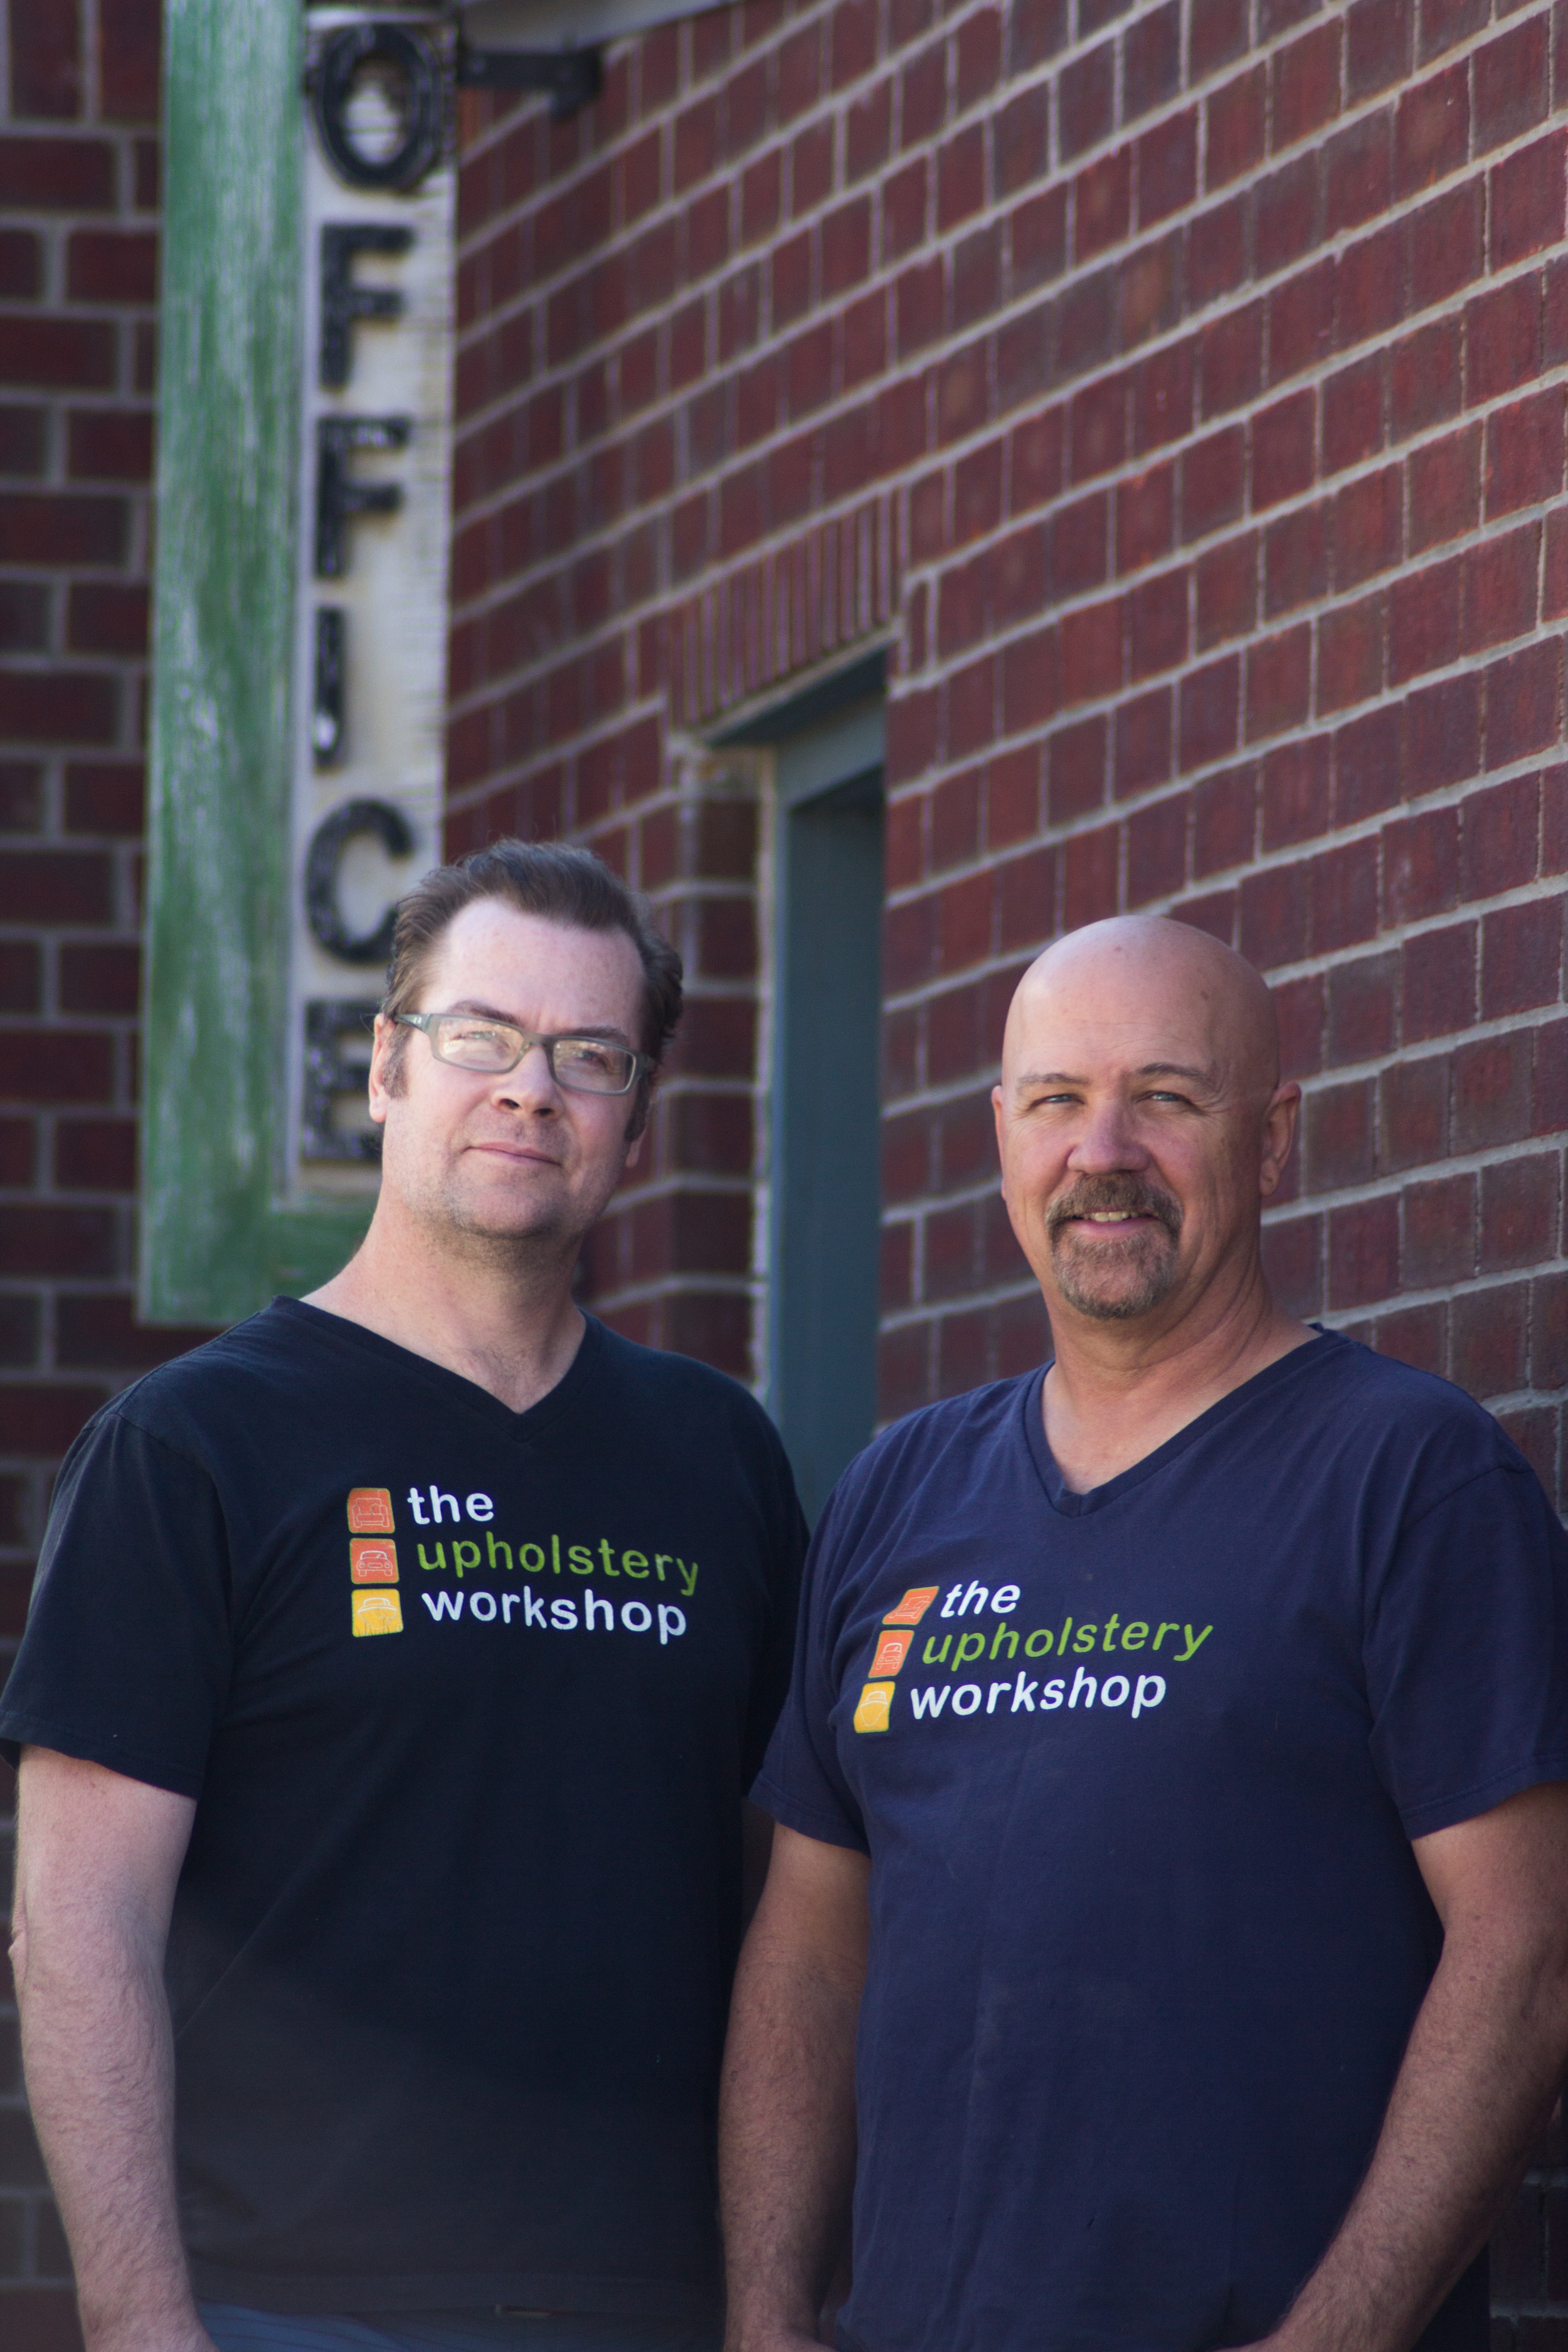 CHRIS WHITE & DOUG WHITE, OWNERS OF THE UPHOLSTERY WORKSHOP